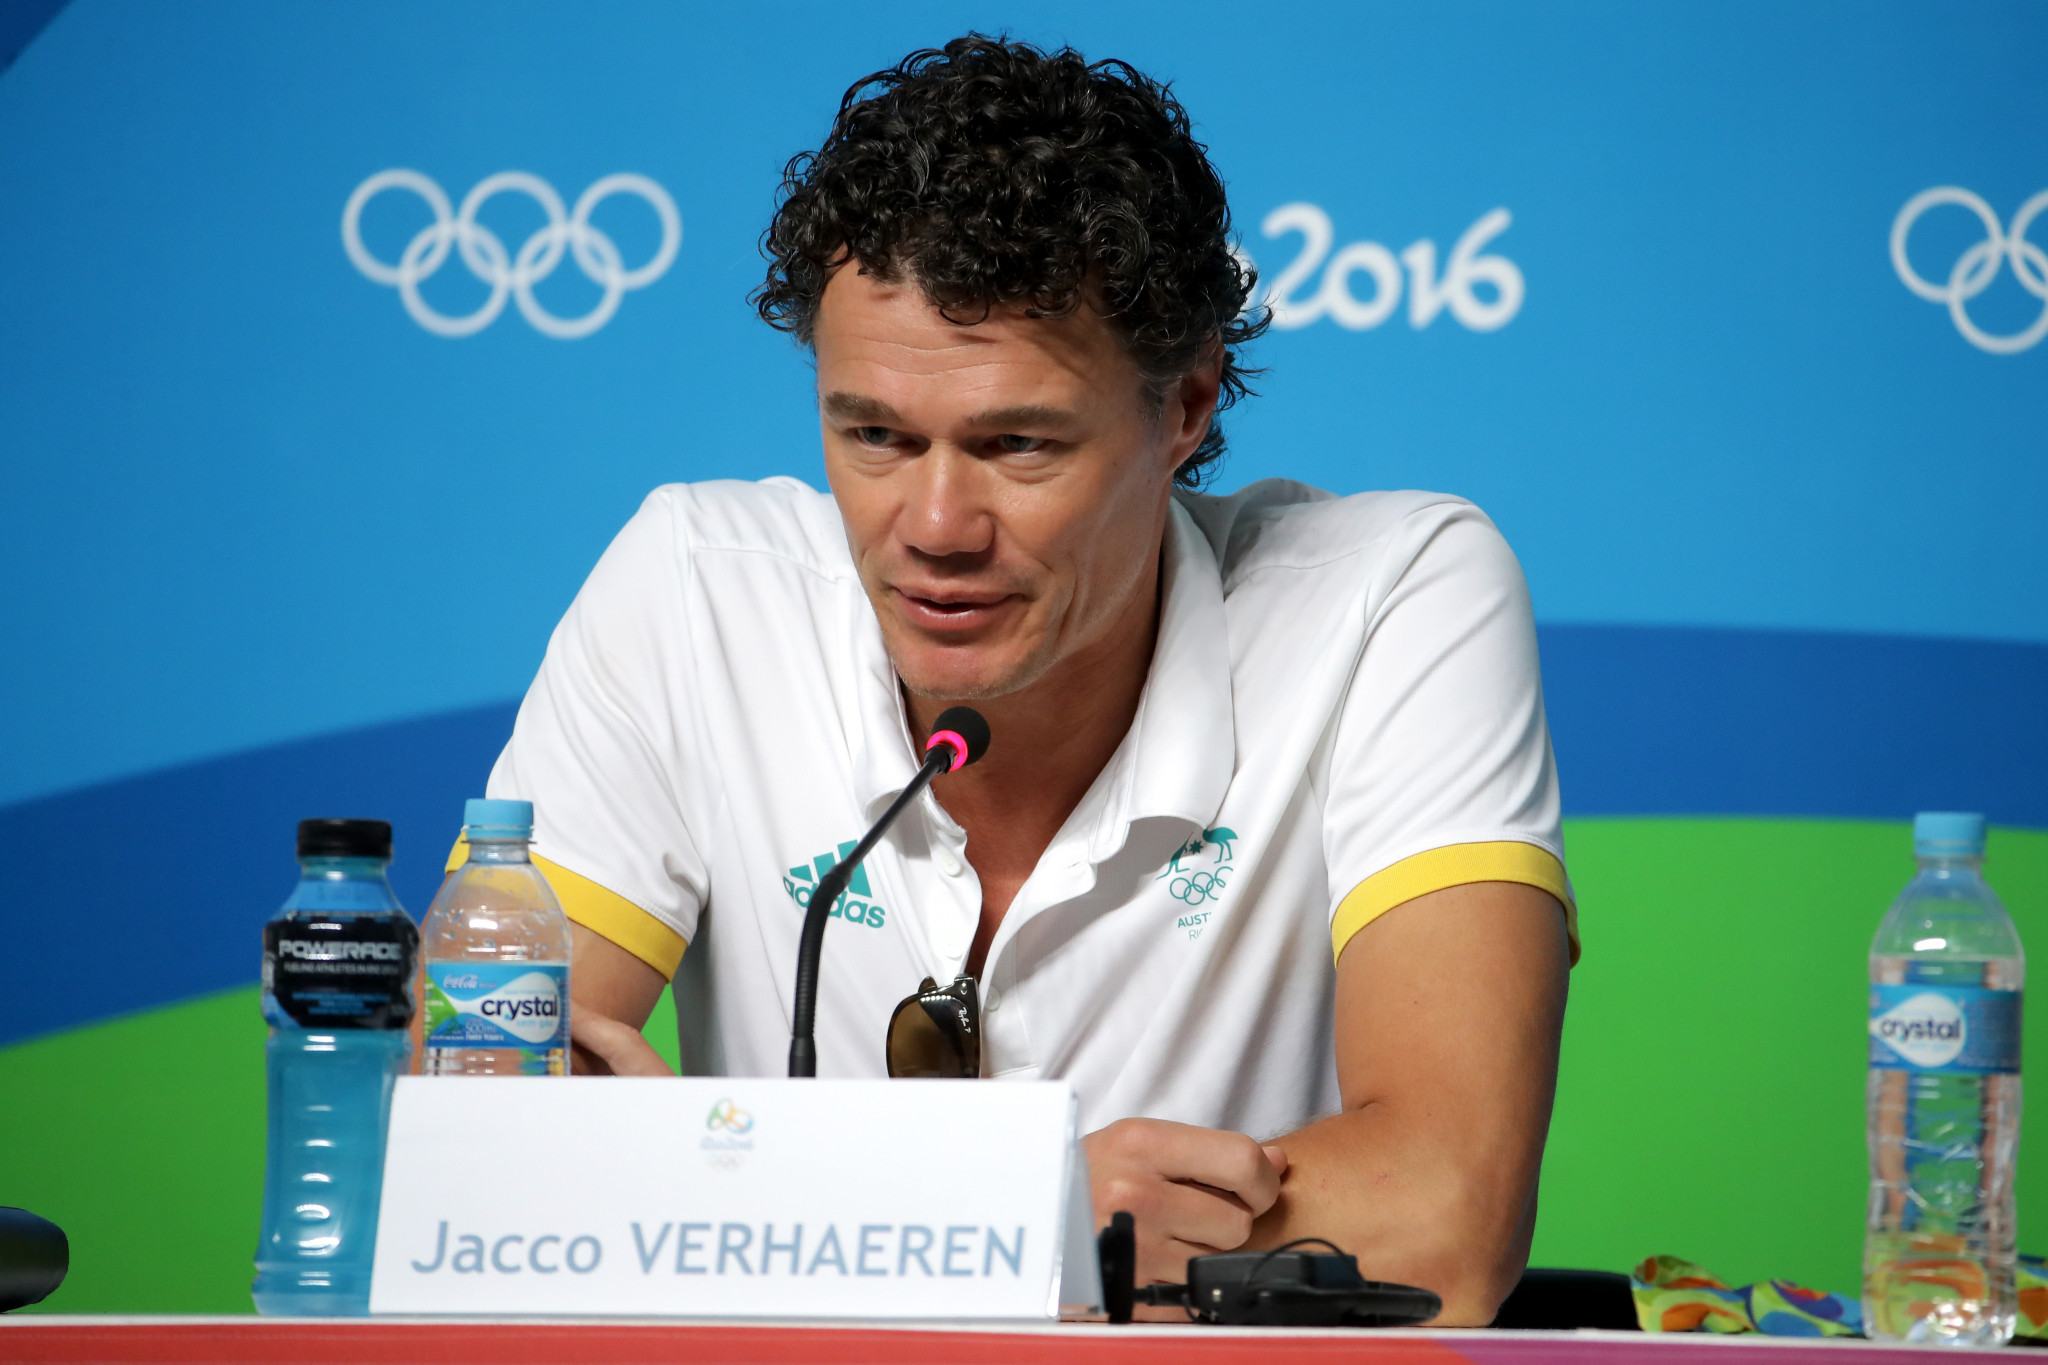 Jacco Verhaeren led the Australian team at the Rio 2016 Olympic Games ©Getty Images